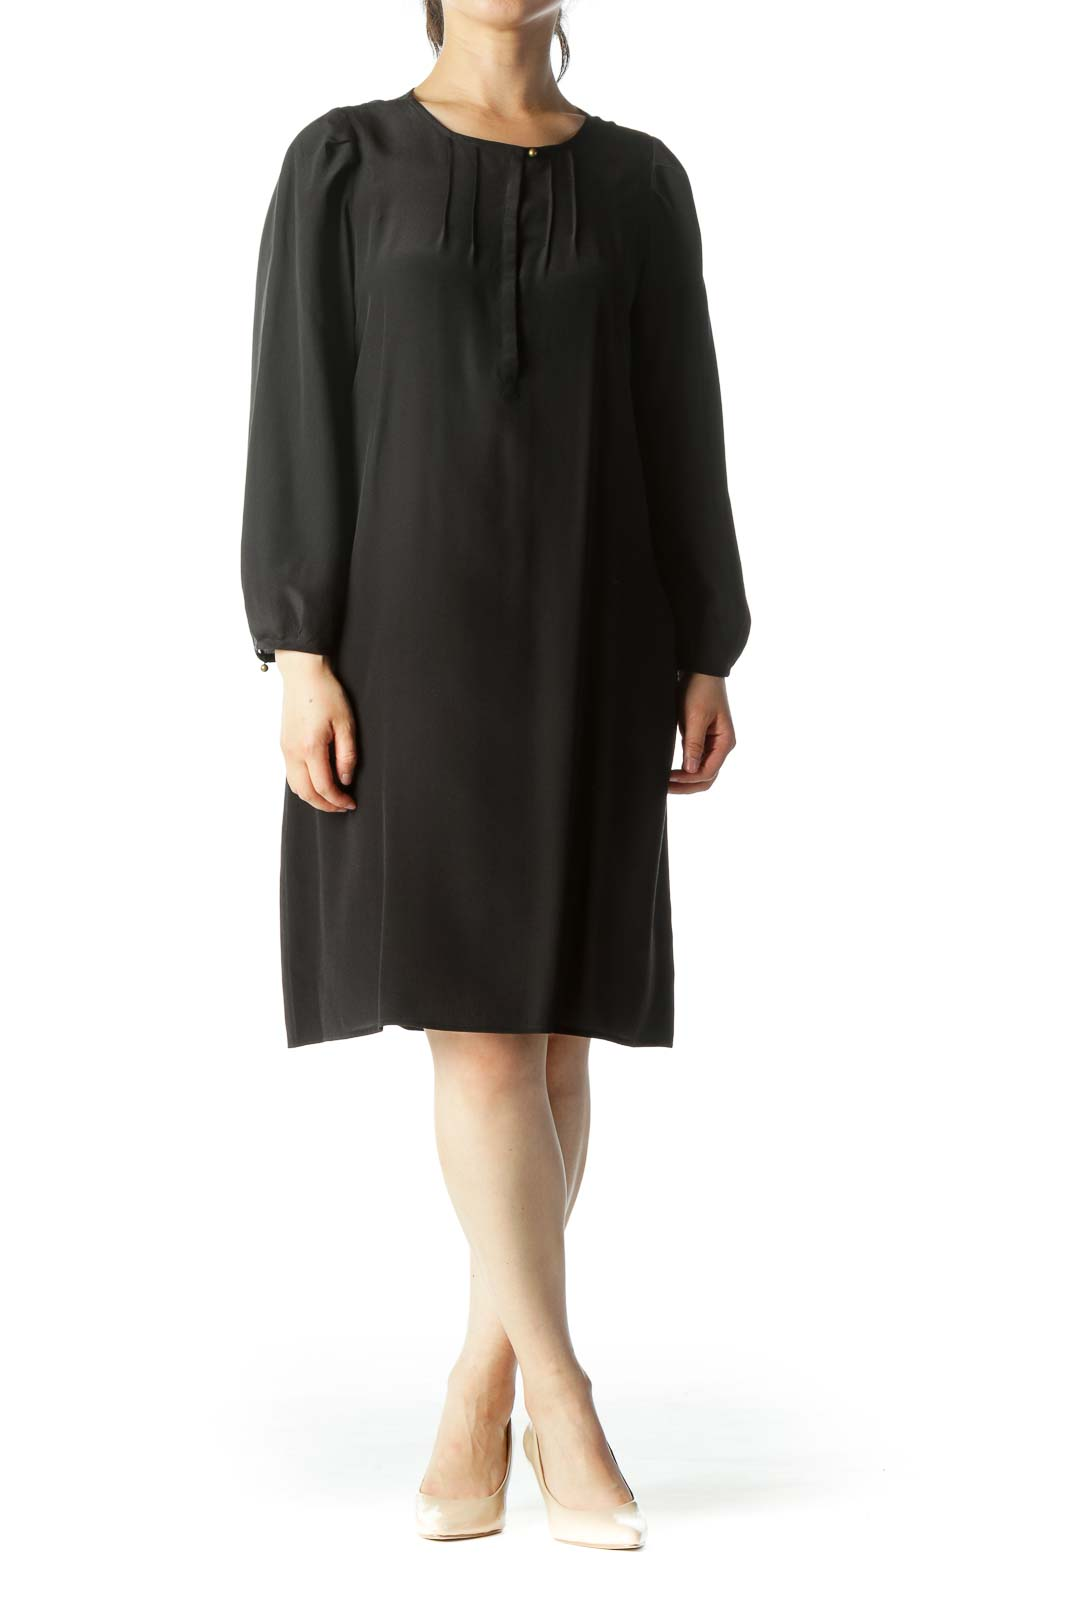 Black 100% Silk Chest-Pleated Buttoned 3/4 Sleeve Peasant Cocktail Dress